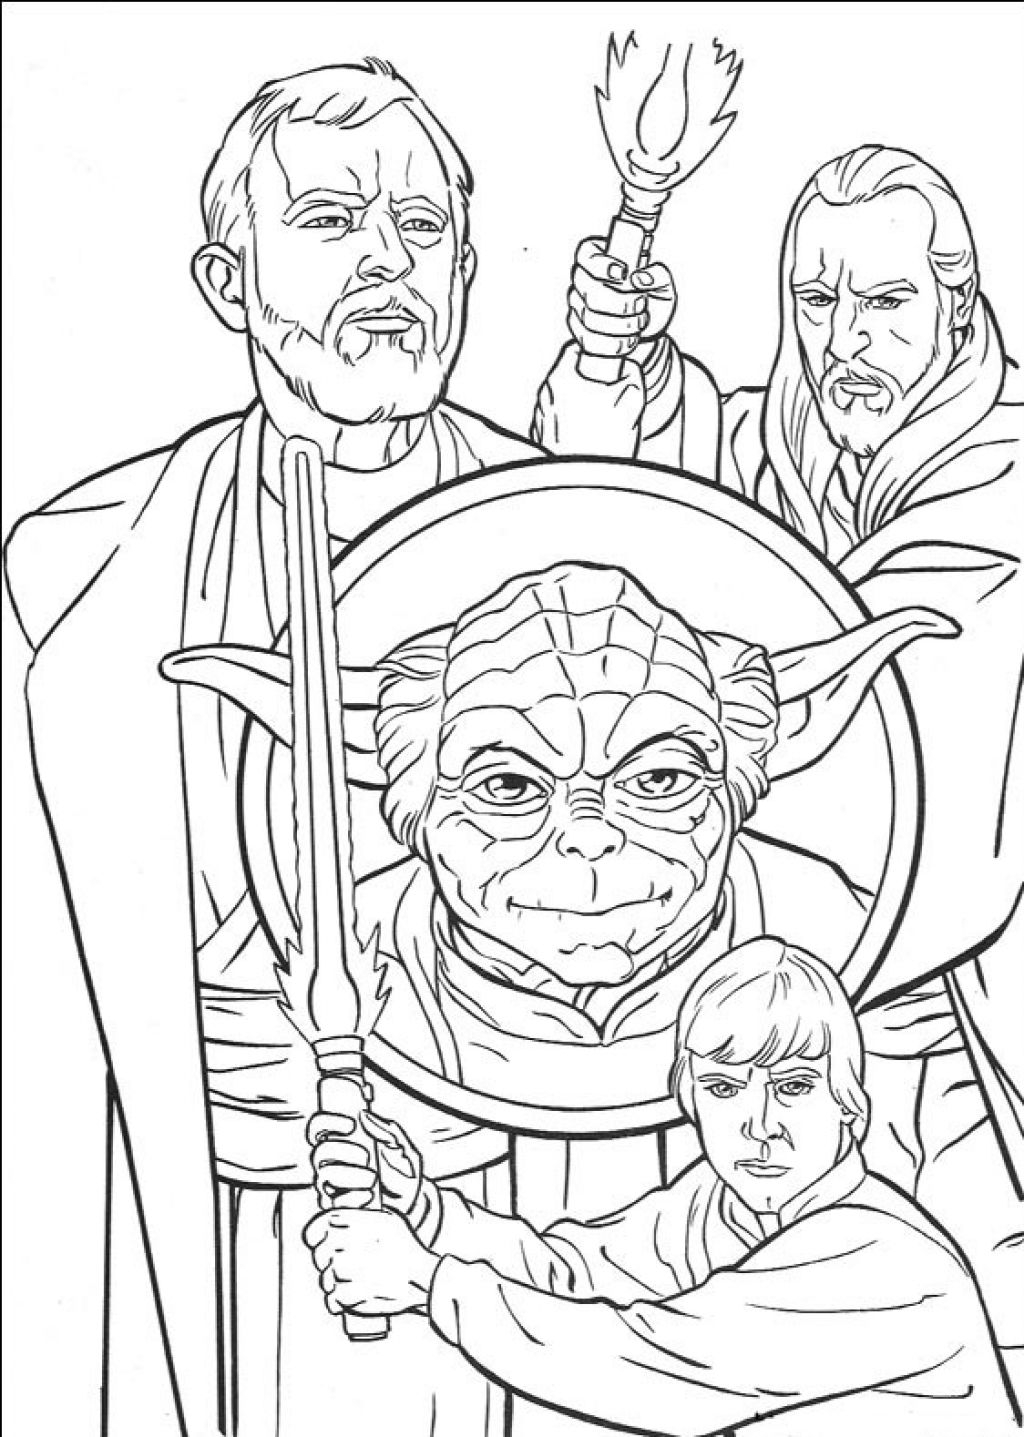 Star Wars Characters Coloring Pages Gallery | Free ...